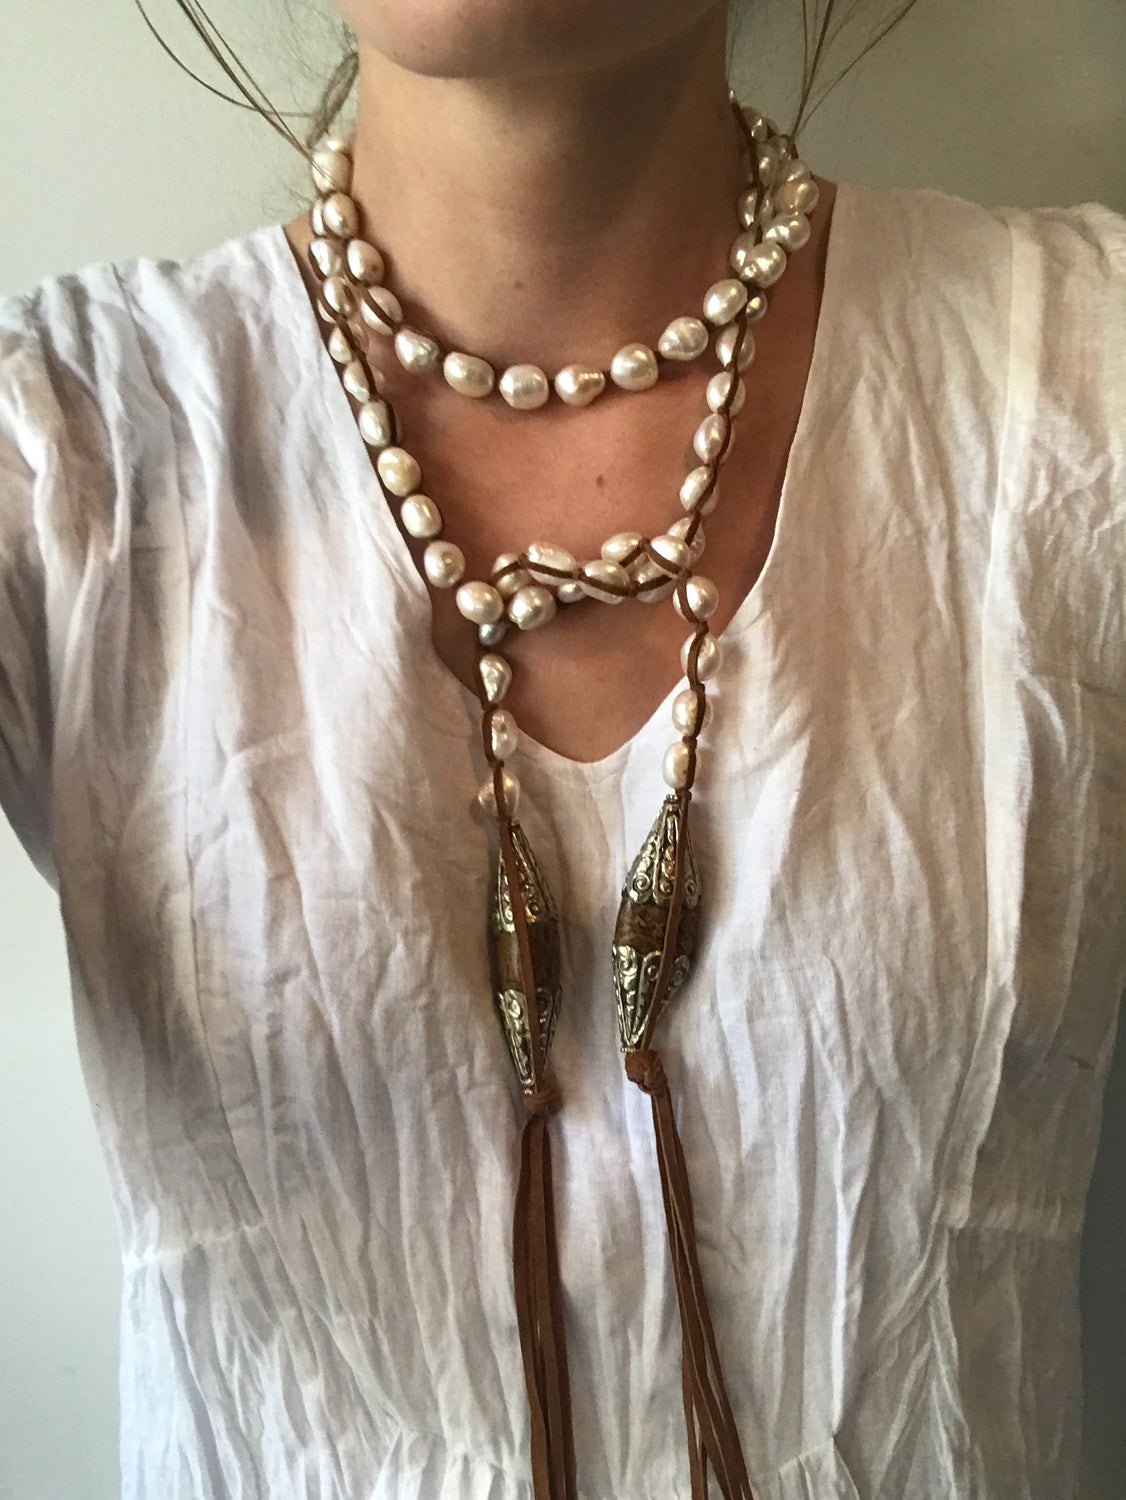 #7 Med. White Pearl Necklace w/ Vintage Tibetan Wood